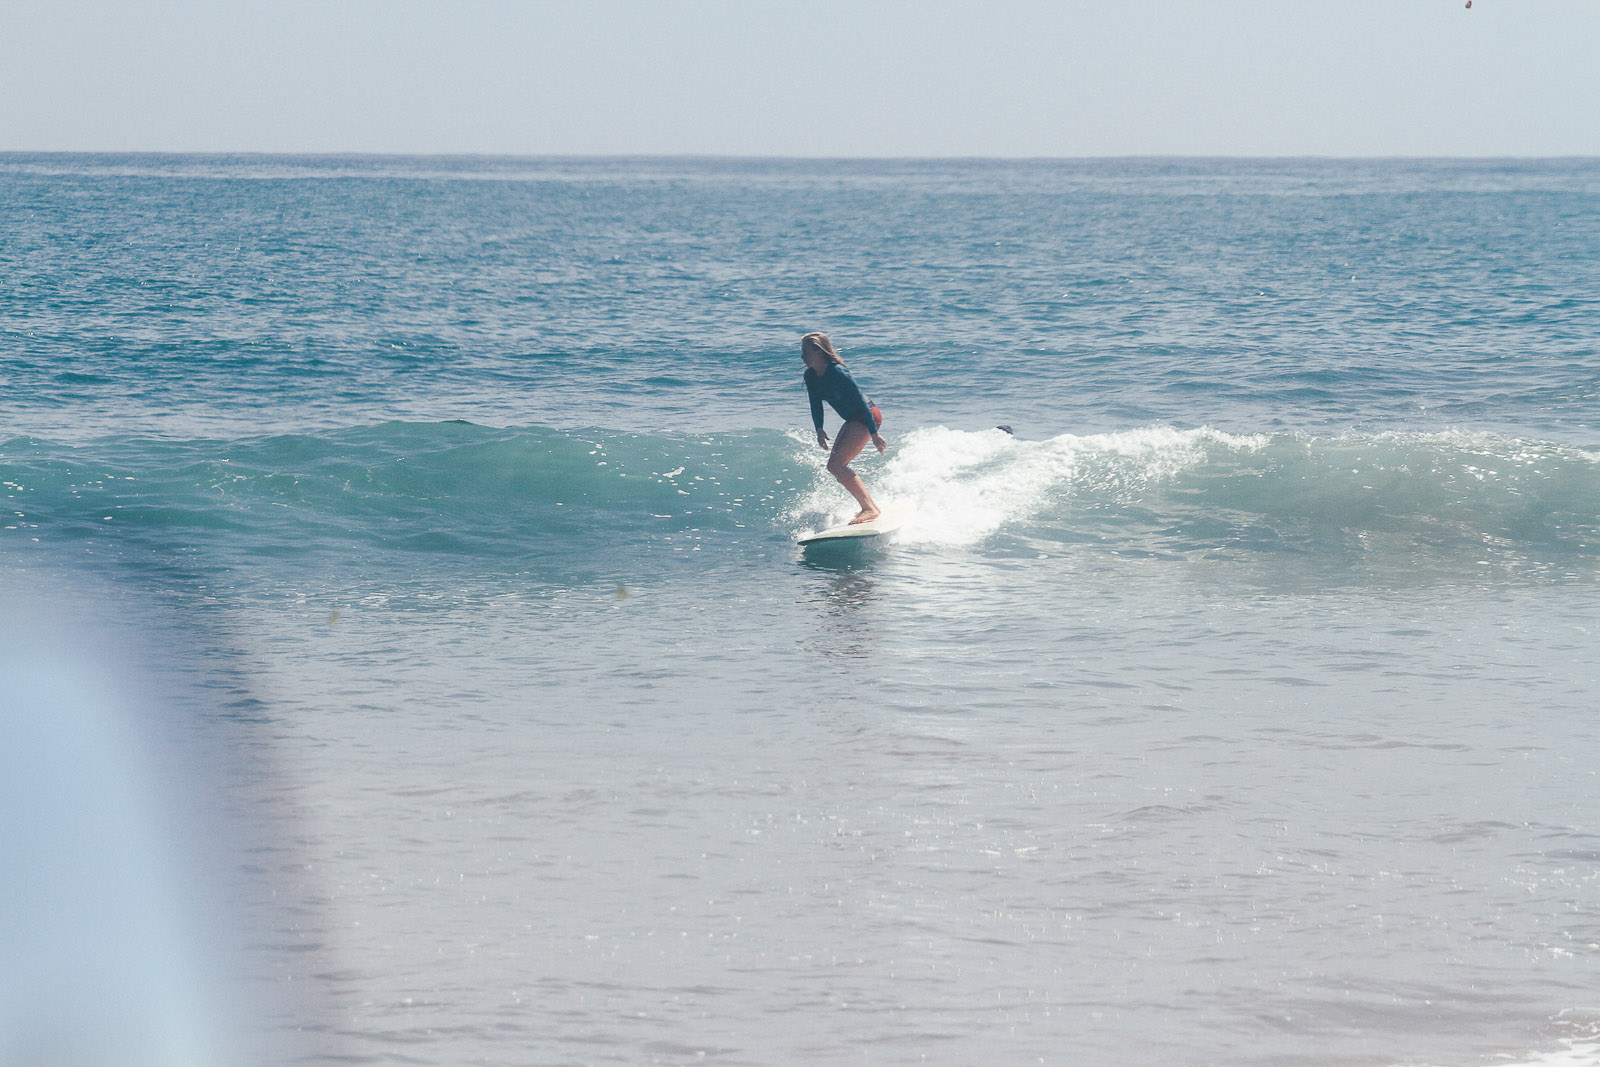 Sunshinestories-surf-travel-blog-IMG_2259